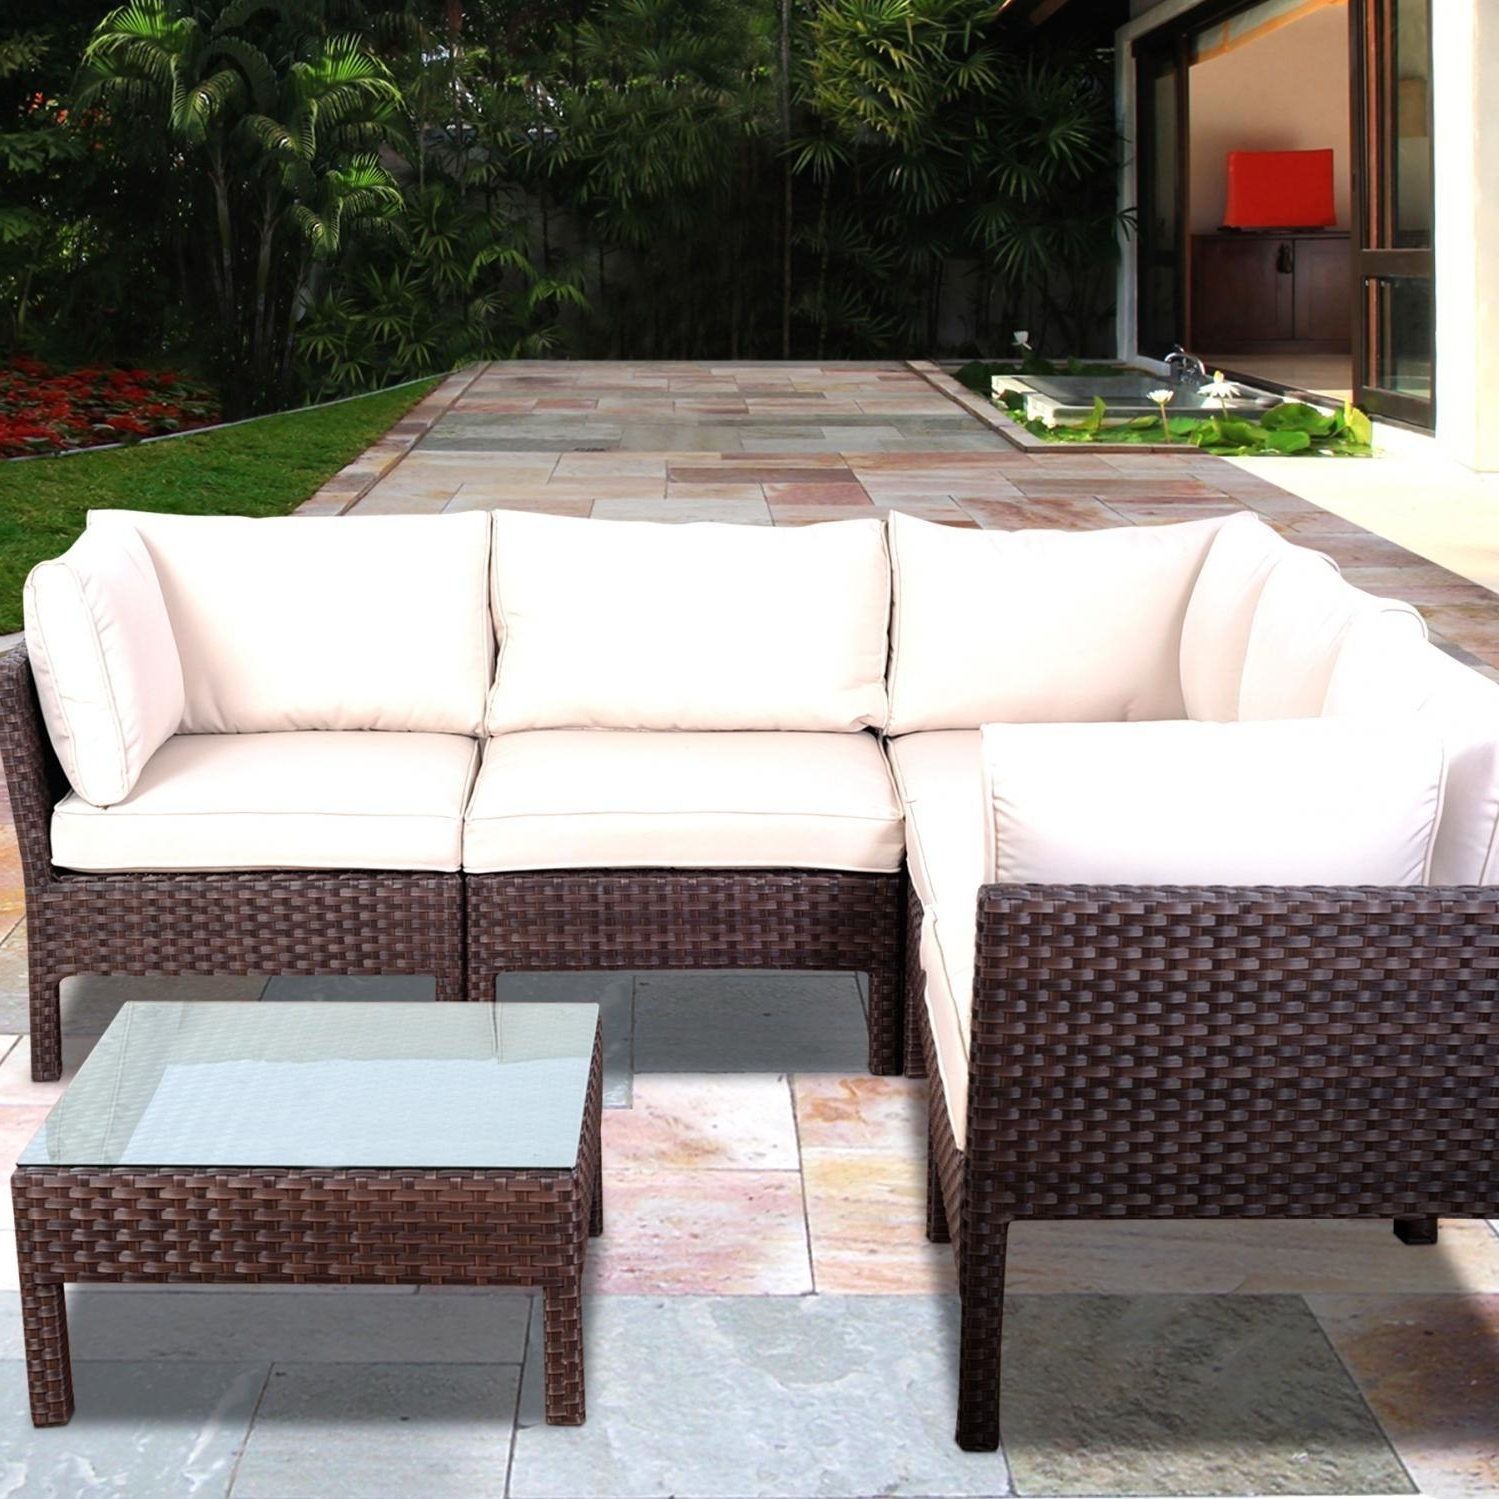 Conversation Patio Sets With Outdoor Sectionals In Widely Used Atlantic Infinity 5 Person Resin Wicker Patio Sectional Set (View 13 of 20)